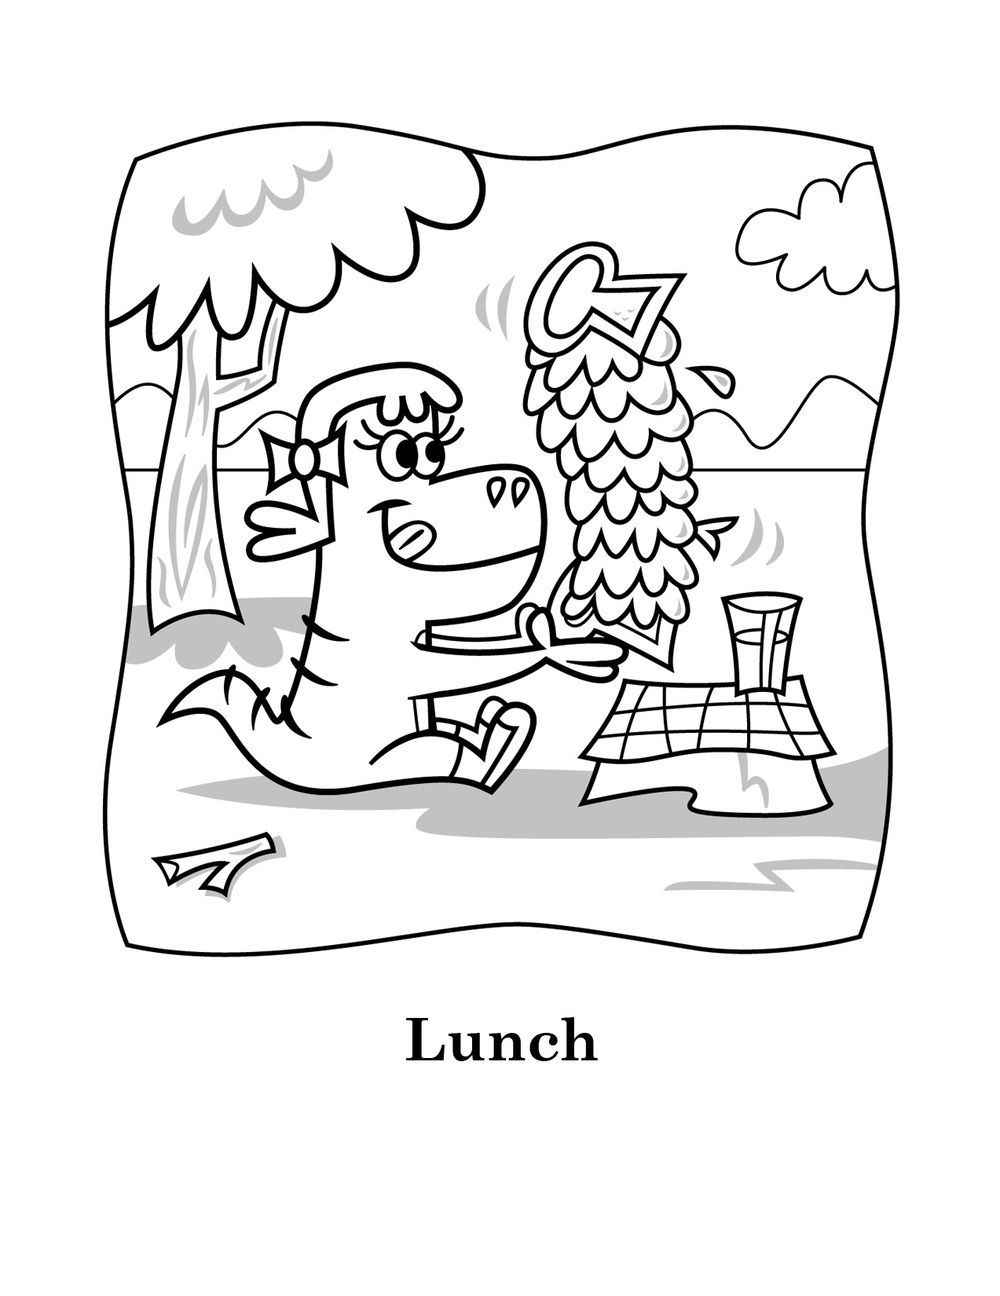 Printable coloring page Lucy's eating lunch, yum